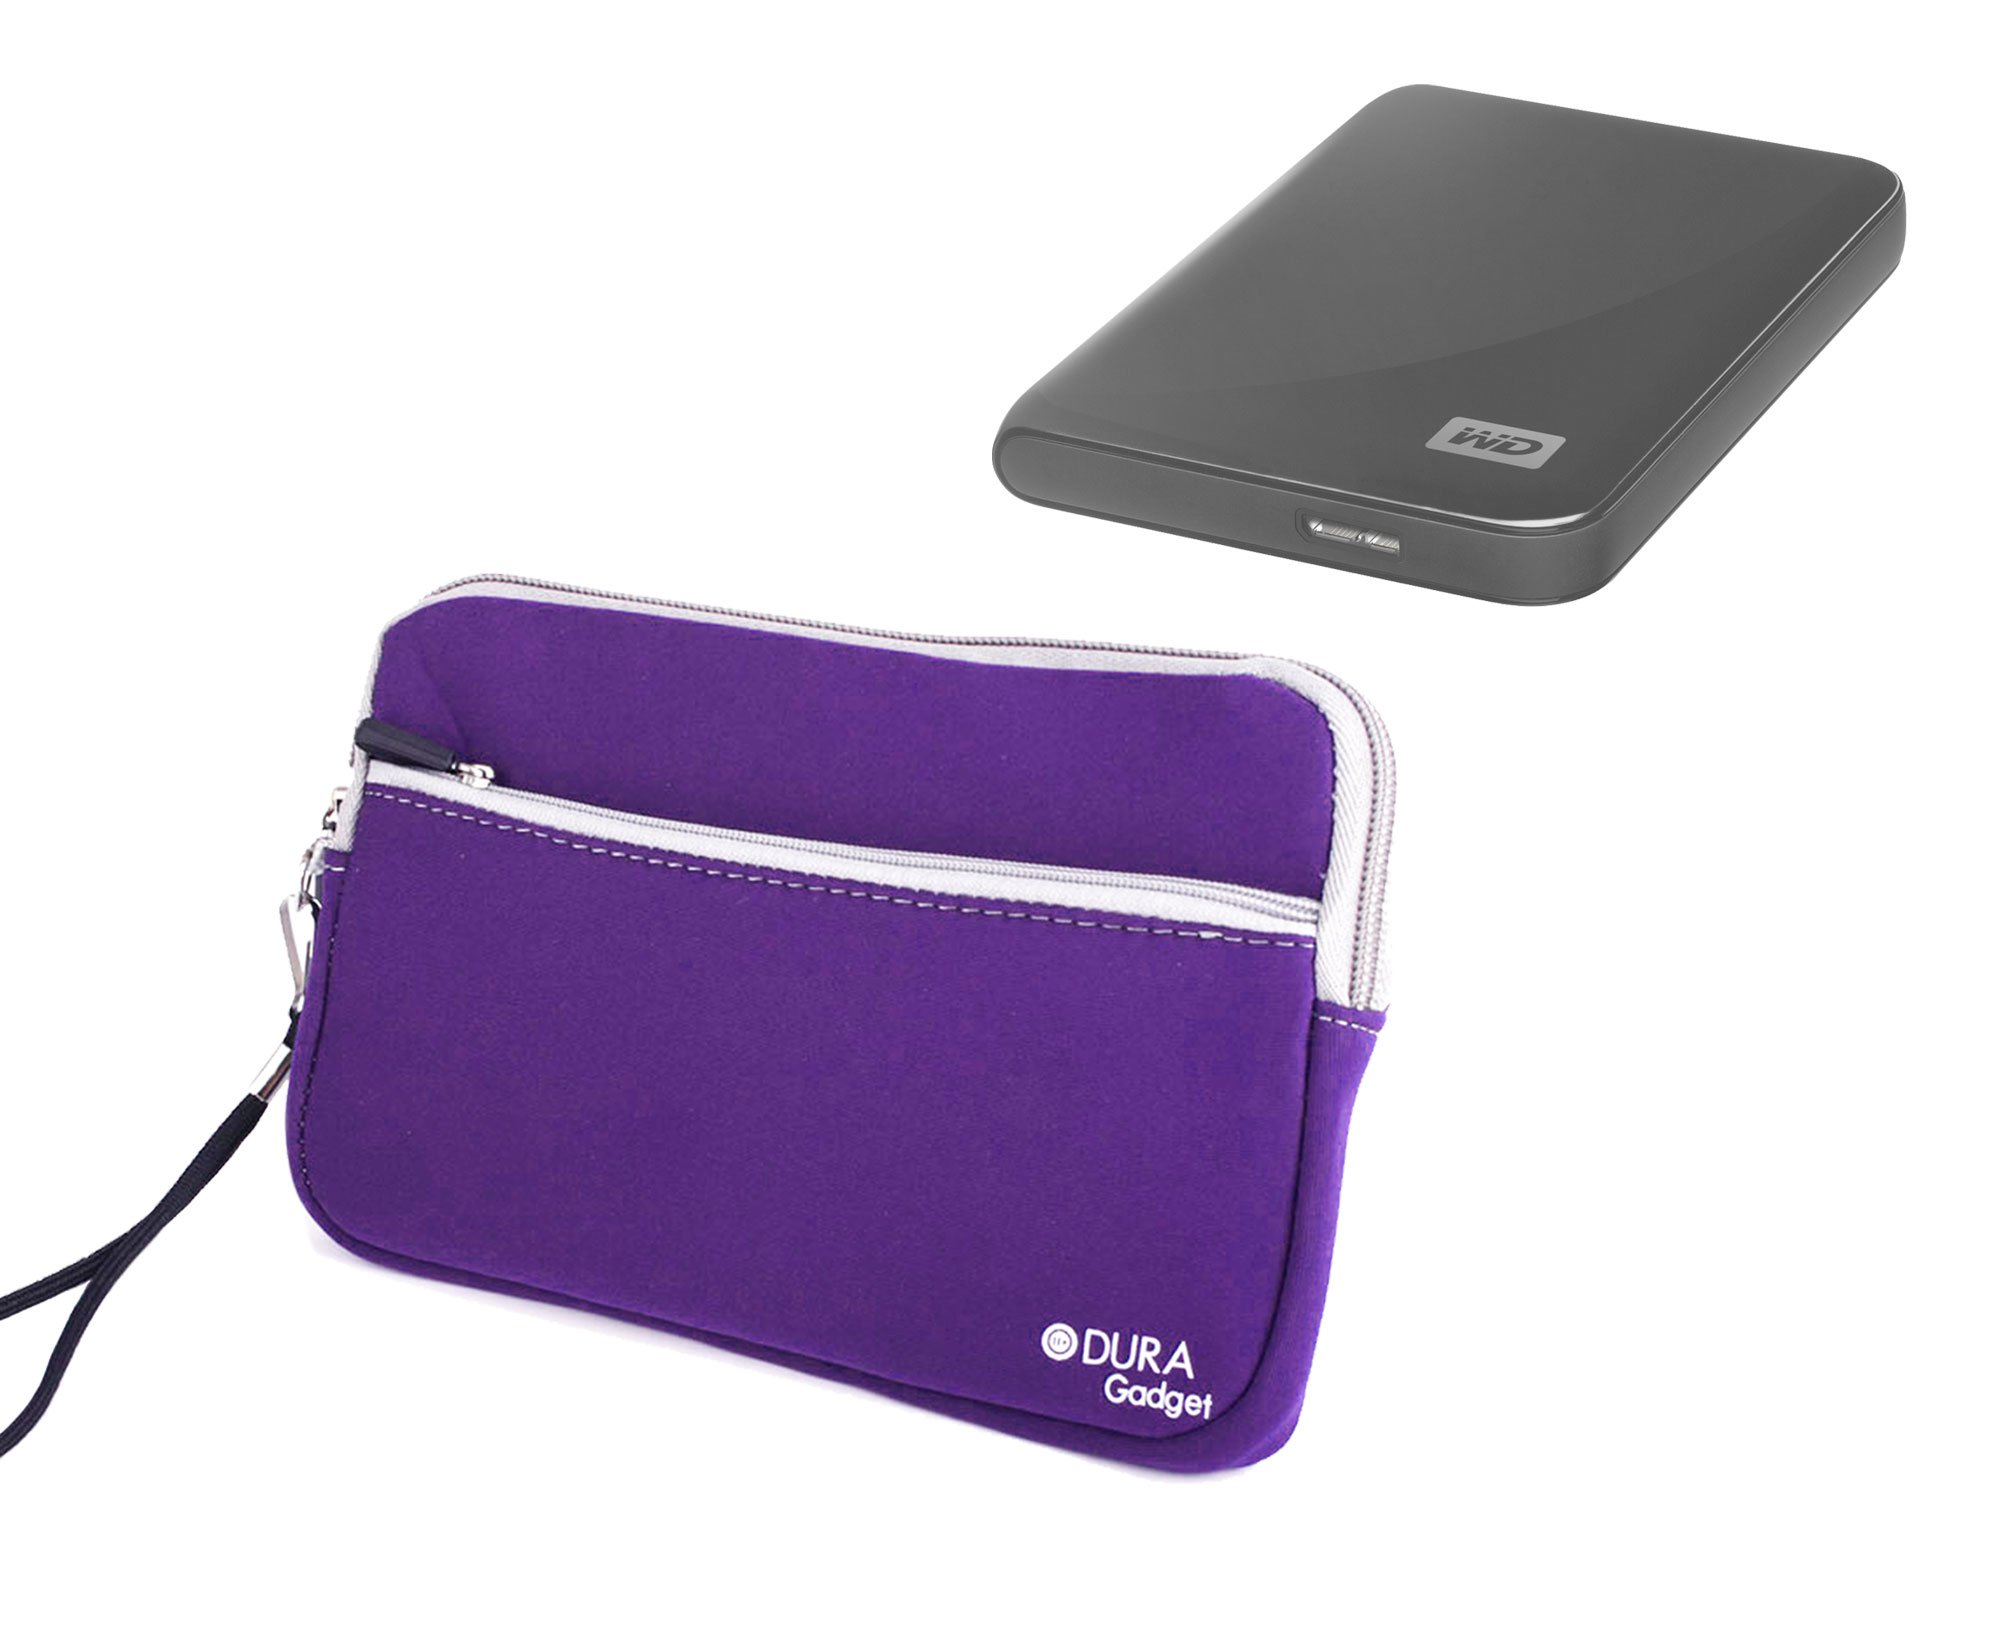 DURAGADGET Purple Travel Water Resistant Cover With Twin Zip - Compatible with WD Elements 1TB & 2TB External Hard Drives (Western Digital)